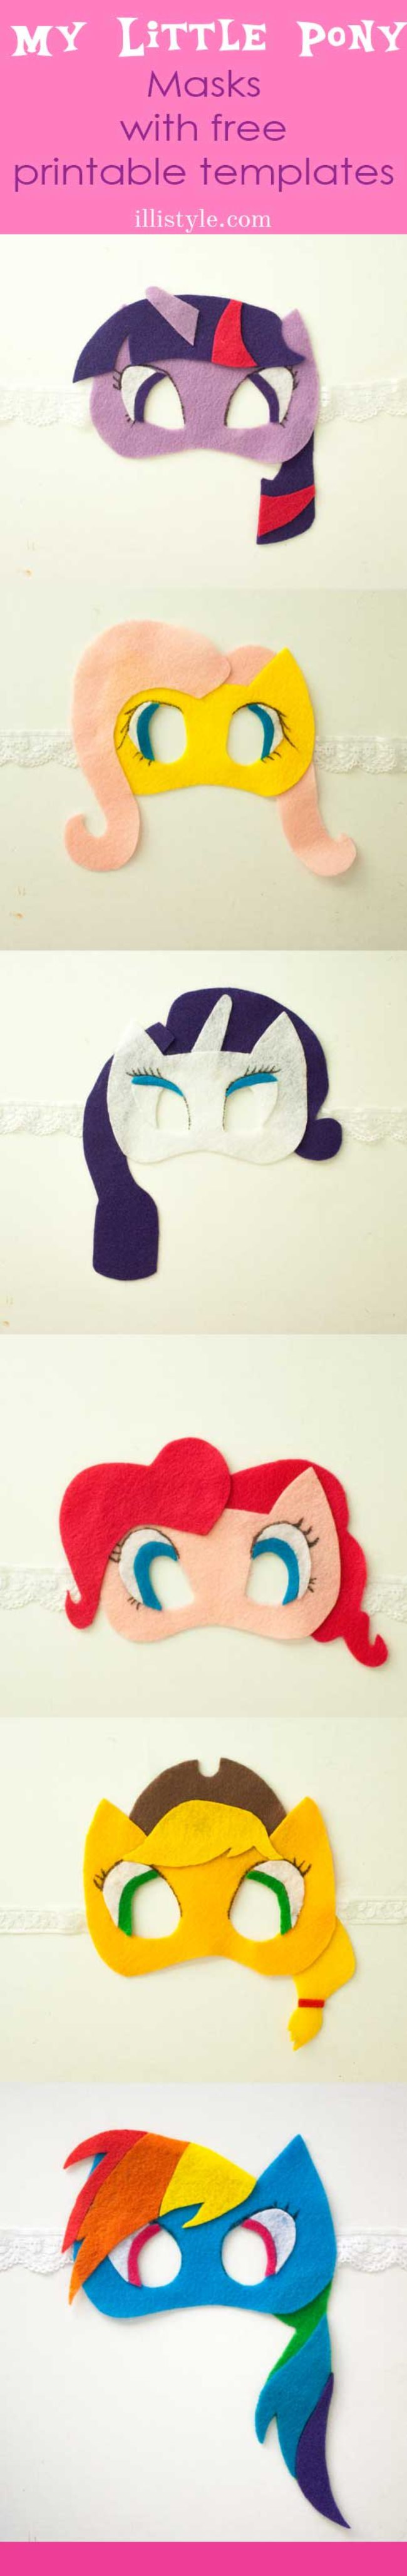 my-little-pony-masks-with-printable-templates-LONG-image-jpg